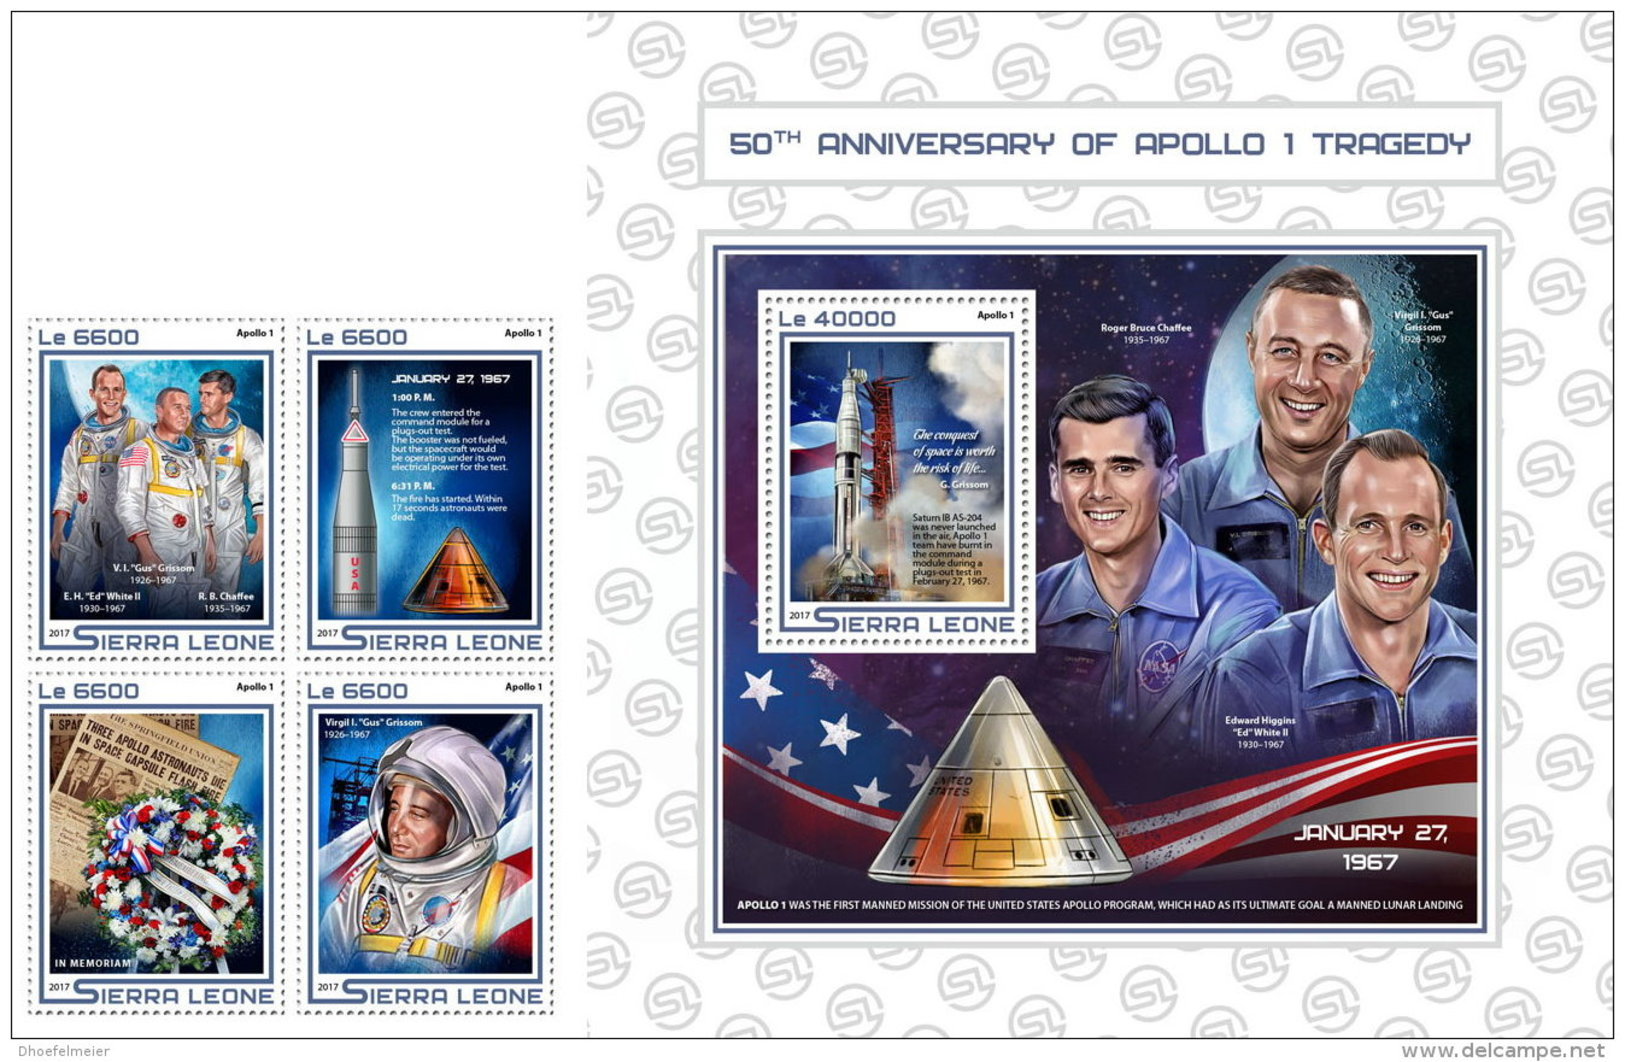 SIERRA LEONE 2017 ** 50 Years Tragedy Apollo 1 Tragödie Apollo 1 Tragedie Apollo 1 4v+S/S - OFFICIAL ISSUE - DH1724 - Space